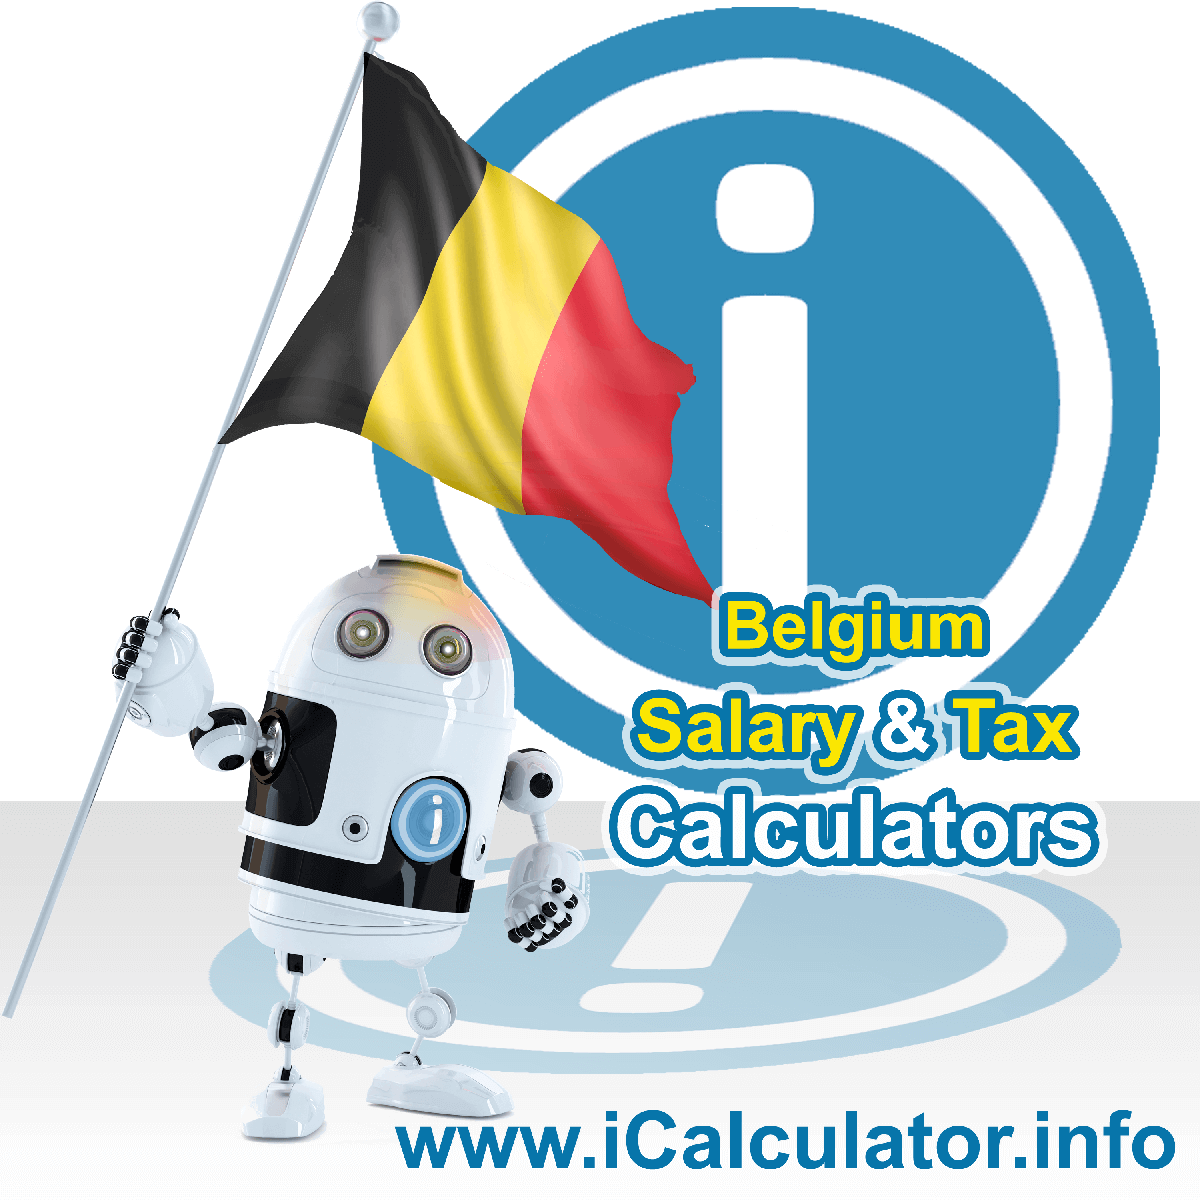 Belgium Wage Calculator. This image shows the Belgium flag and information relating to the tax formula for the Belgium Tax Calculator